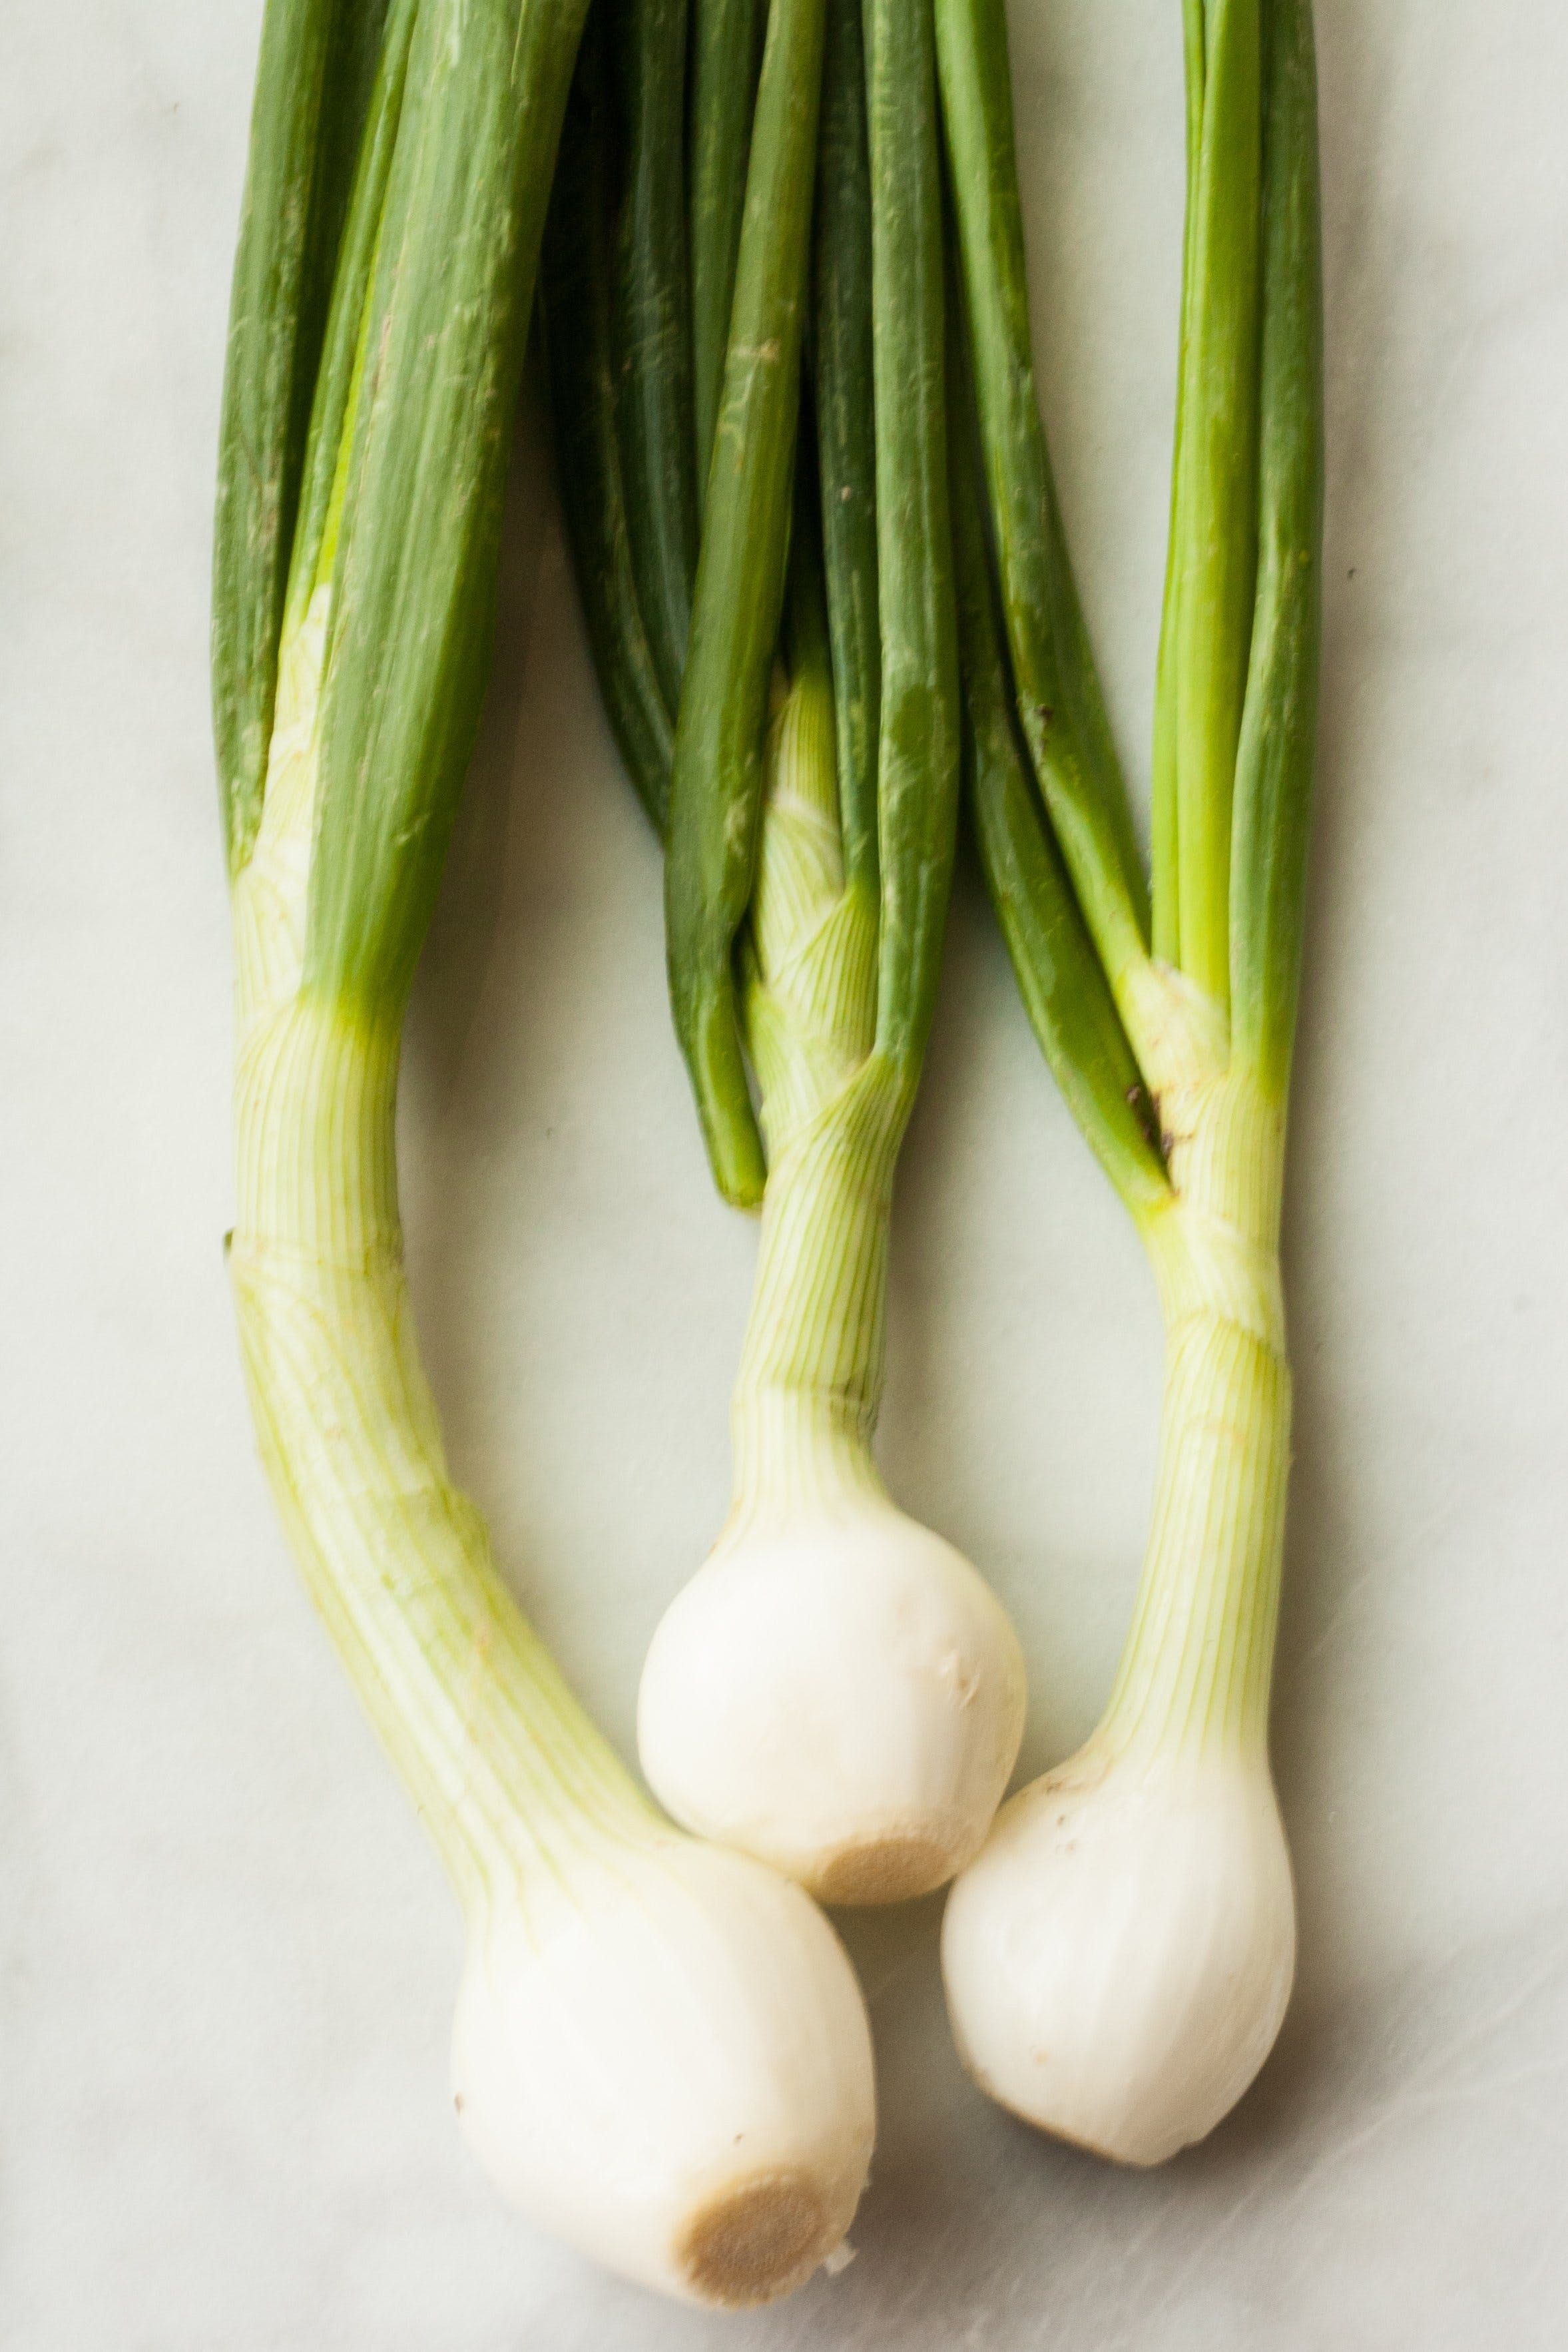 What S The Difference Between Scallions Green Onions And Spring Onions Spring Onion Green Onions Onion